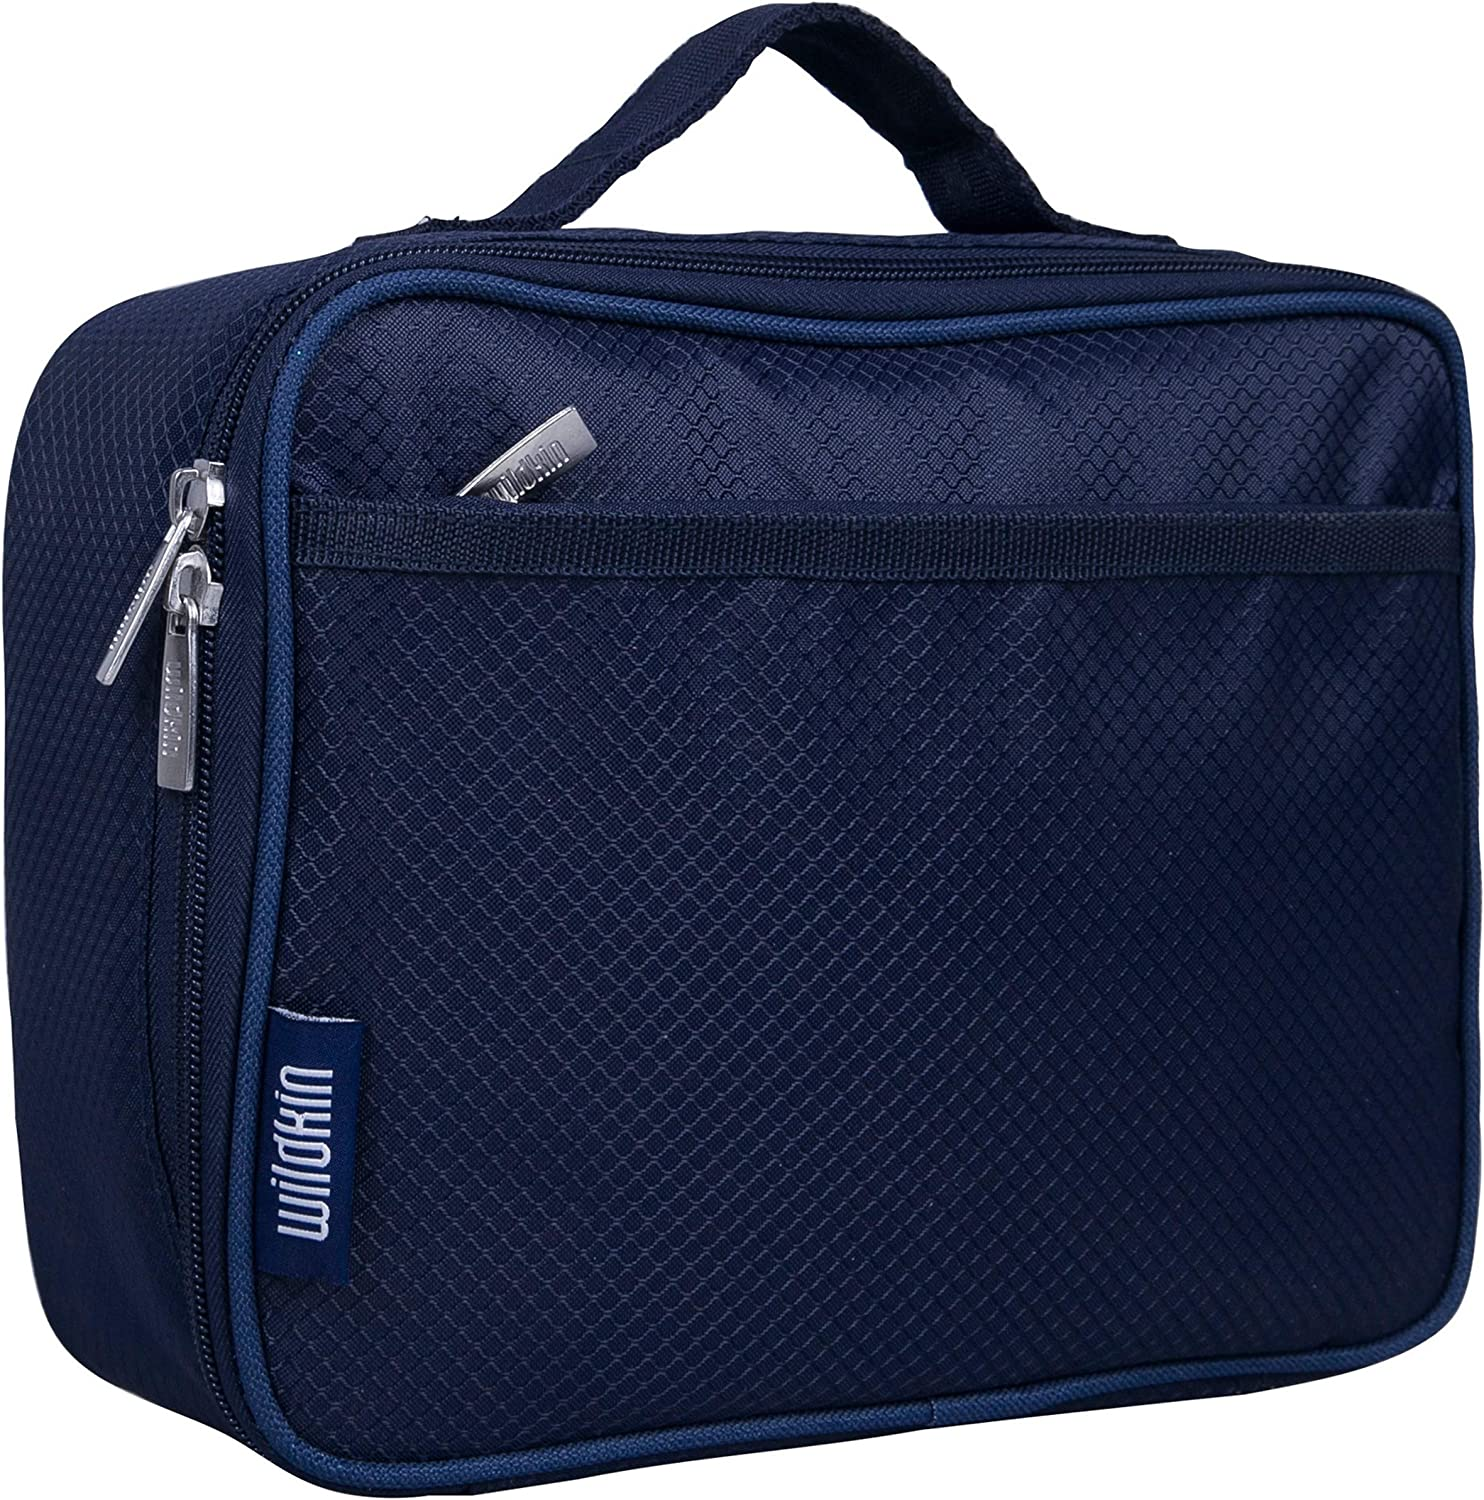 Wildkin Large Insulated Lunch Box for Men and Women, Ideal Size for Packing Hot or Cold Snacks for Work and Travel, Measures 9.75 x 7 x 3.25 Inches, Mom's Choice Award Winner, BPA-free (Rip-Stop Blue)